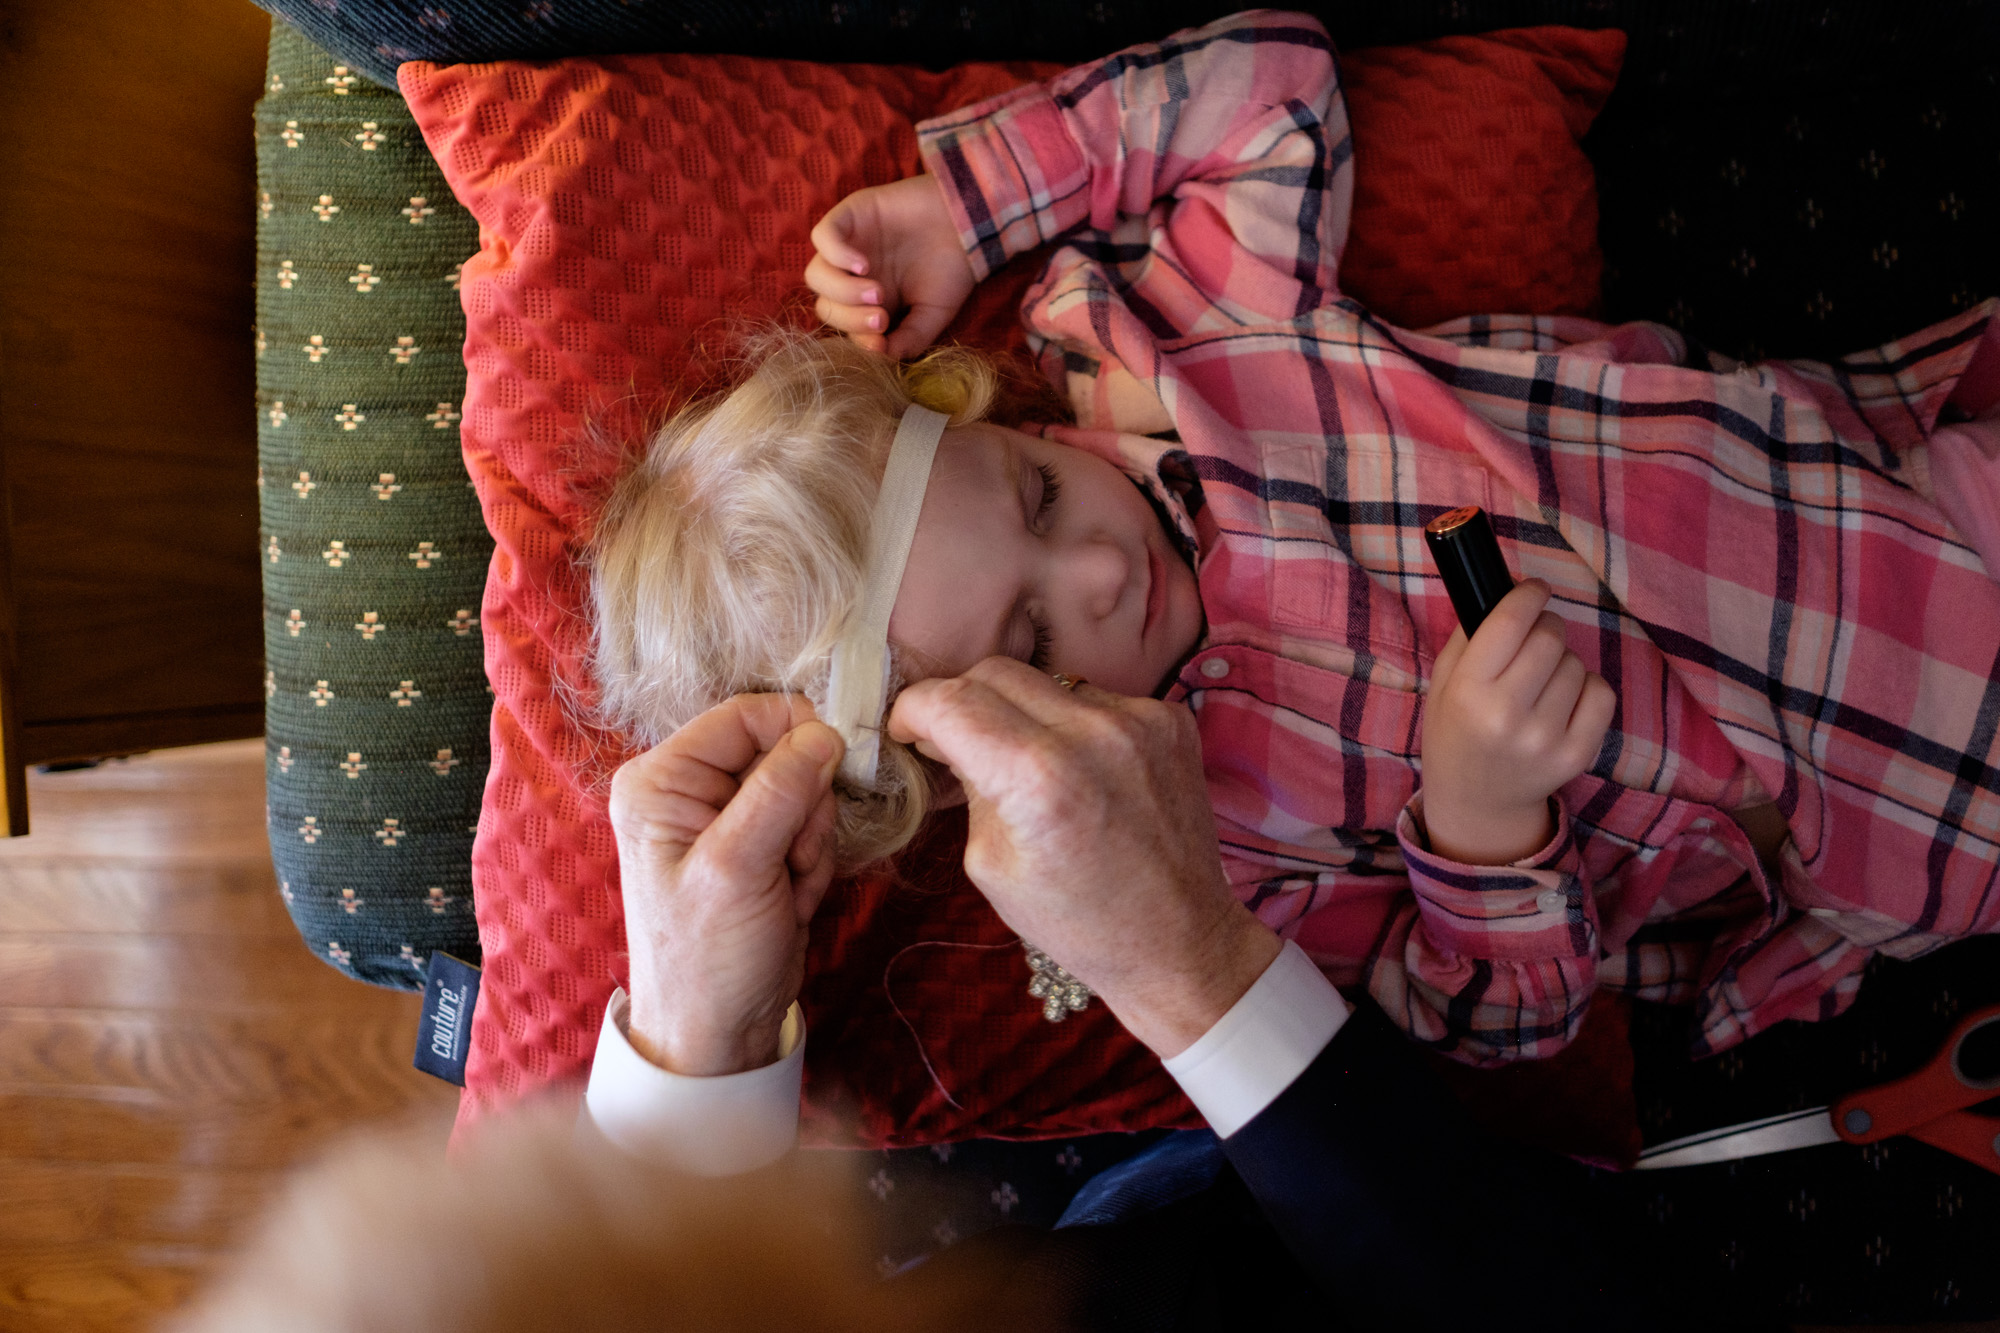 The father of the bride repairs a headpiece for the flower girl before the wedding ceremony at Whistle Bear in Cambridge.